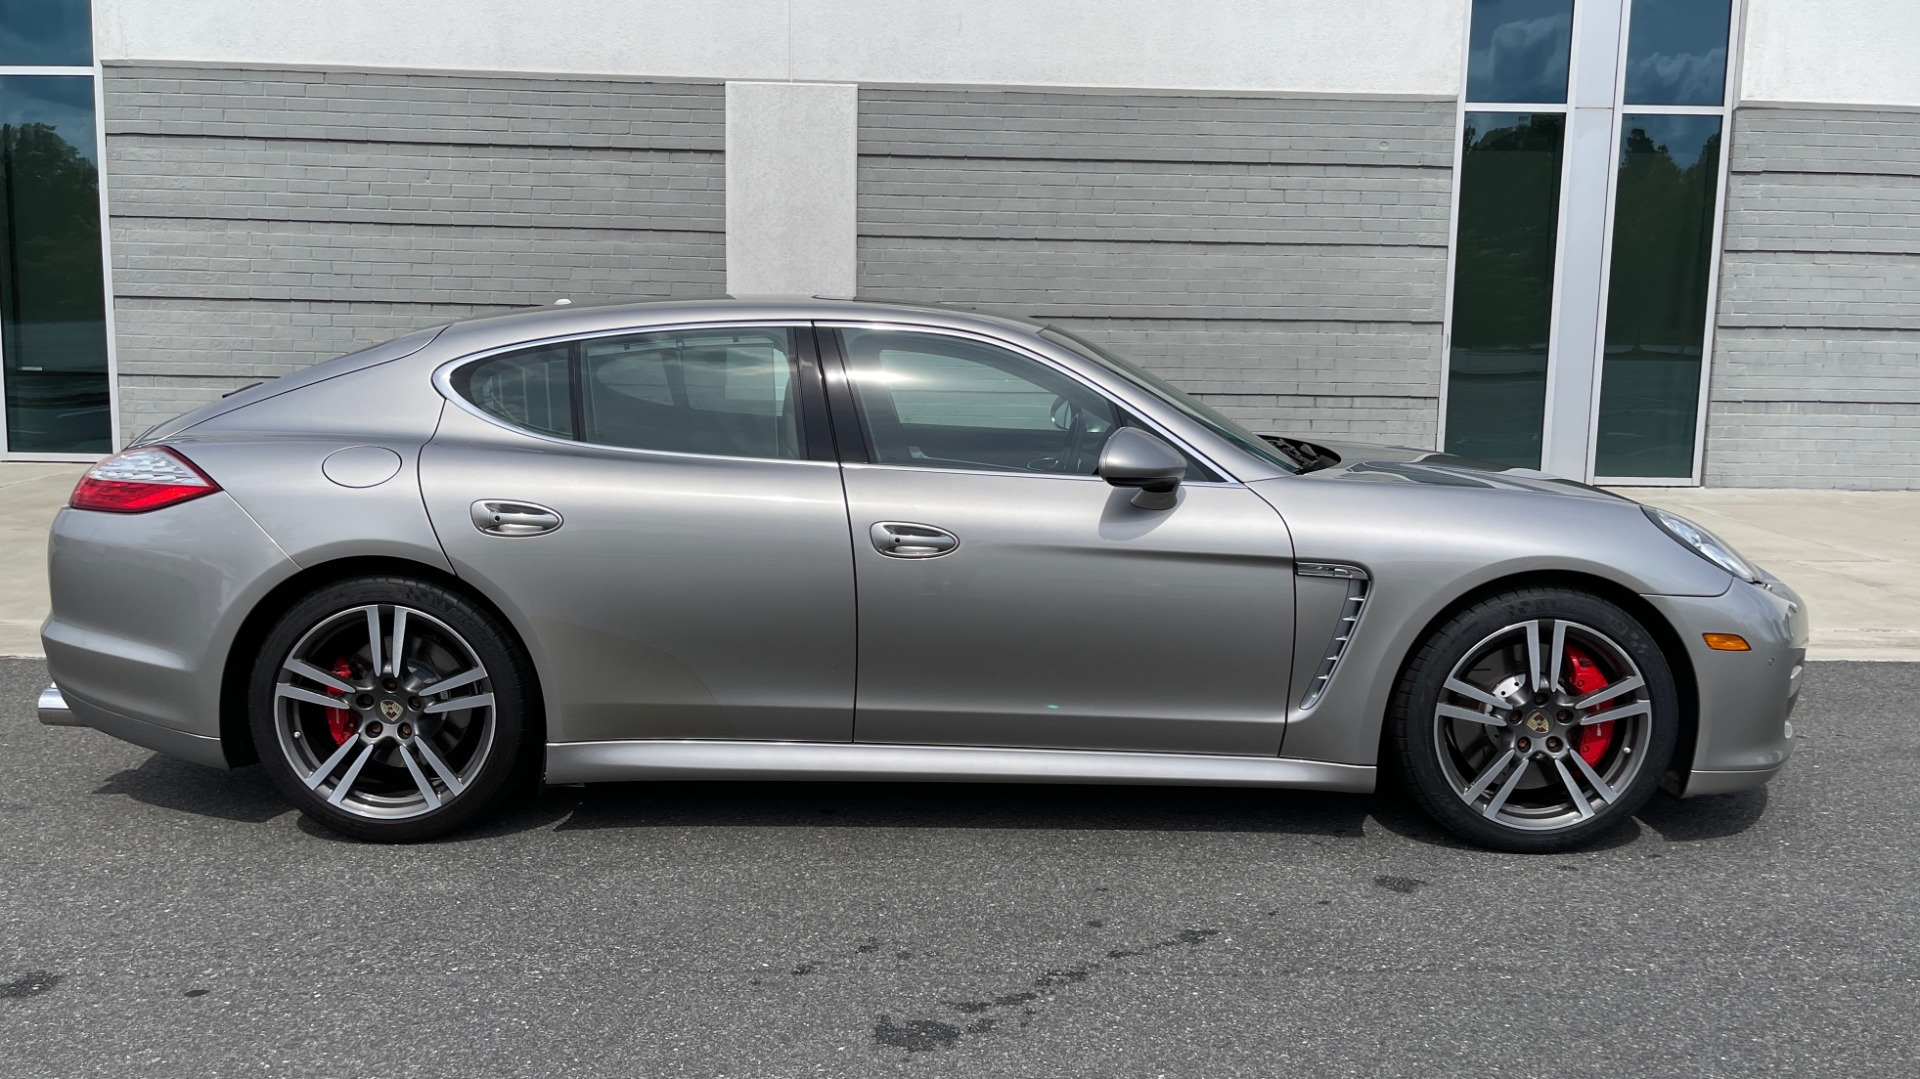 Used 2010 Porsche PANAMERA 4DR HB TURBO / SPORT CHRONO / BOSE / AUTO CLIMATE CONTROL for sale $42,124 at Formula Imports in Charlotte NC 28227 7